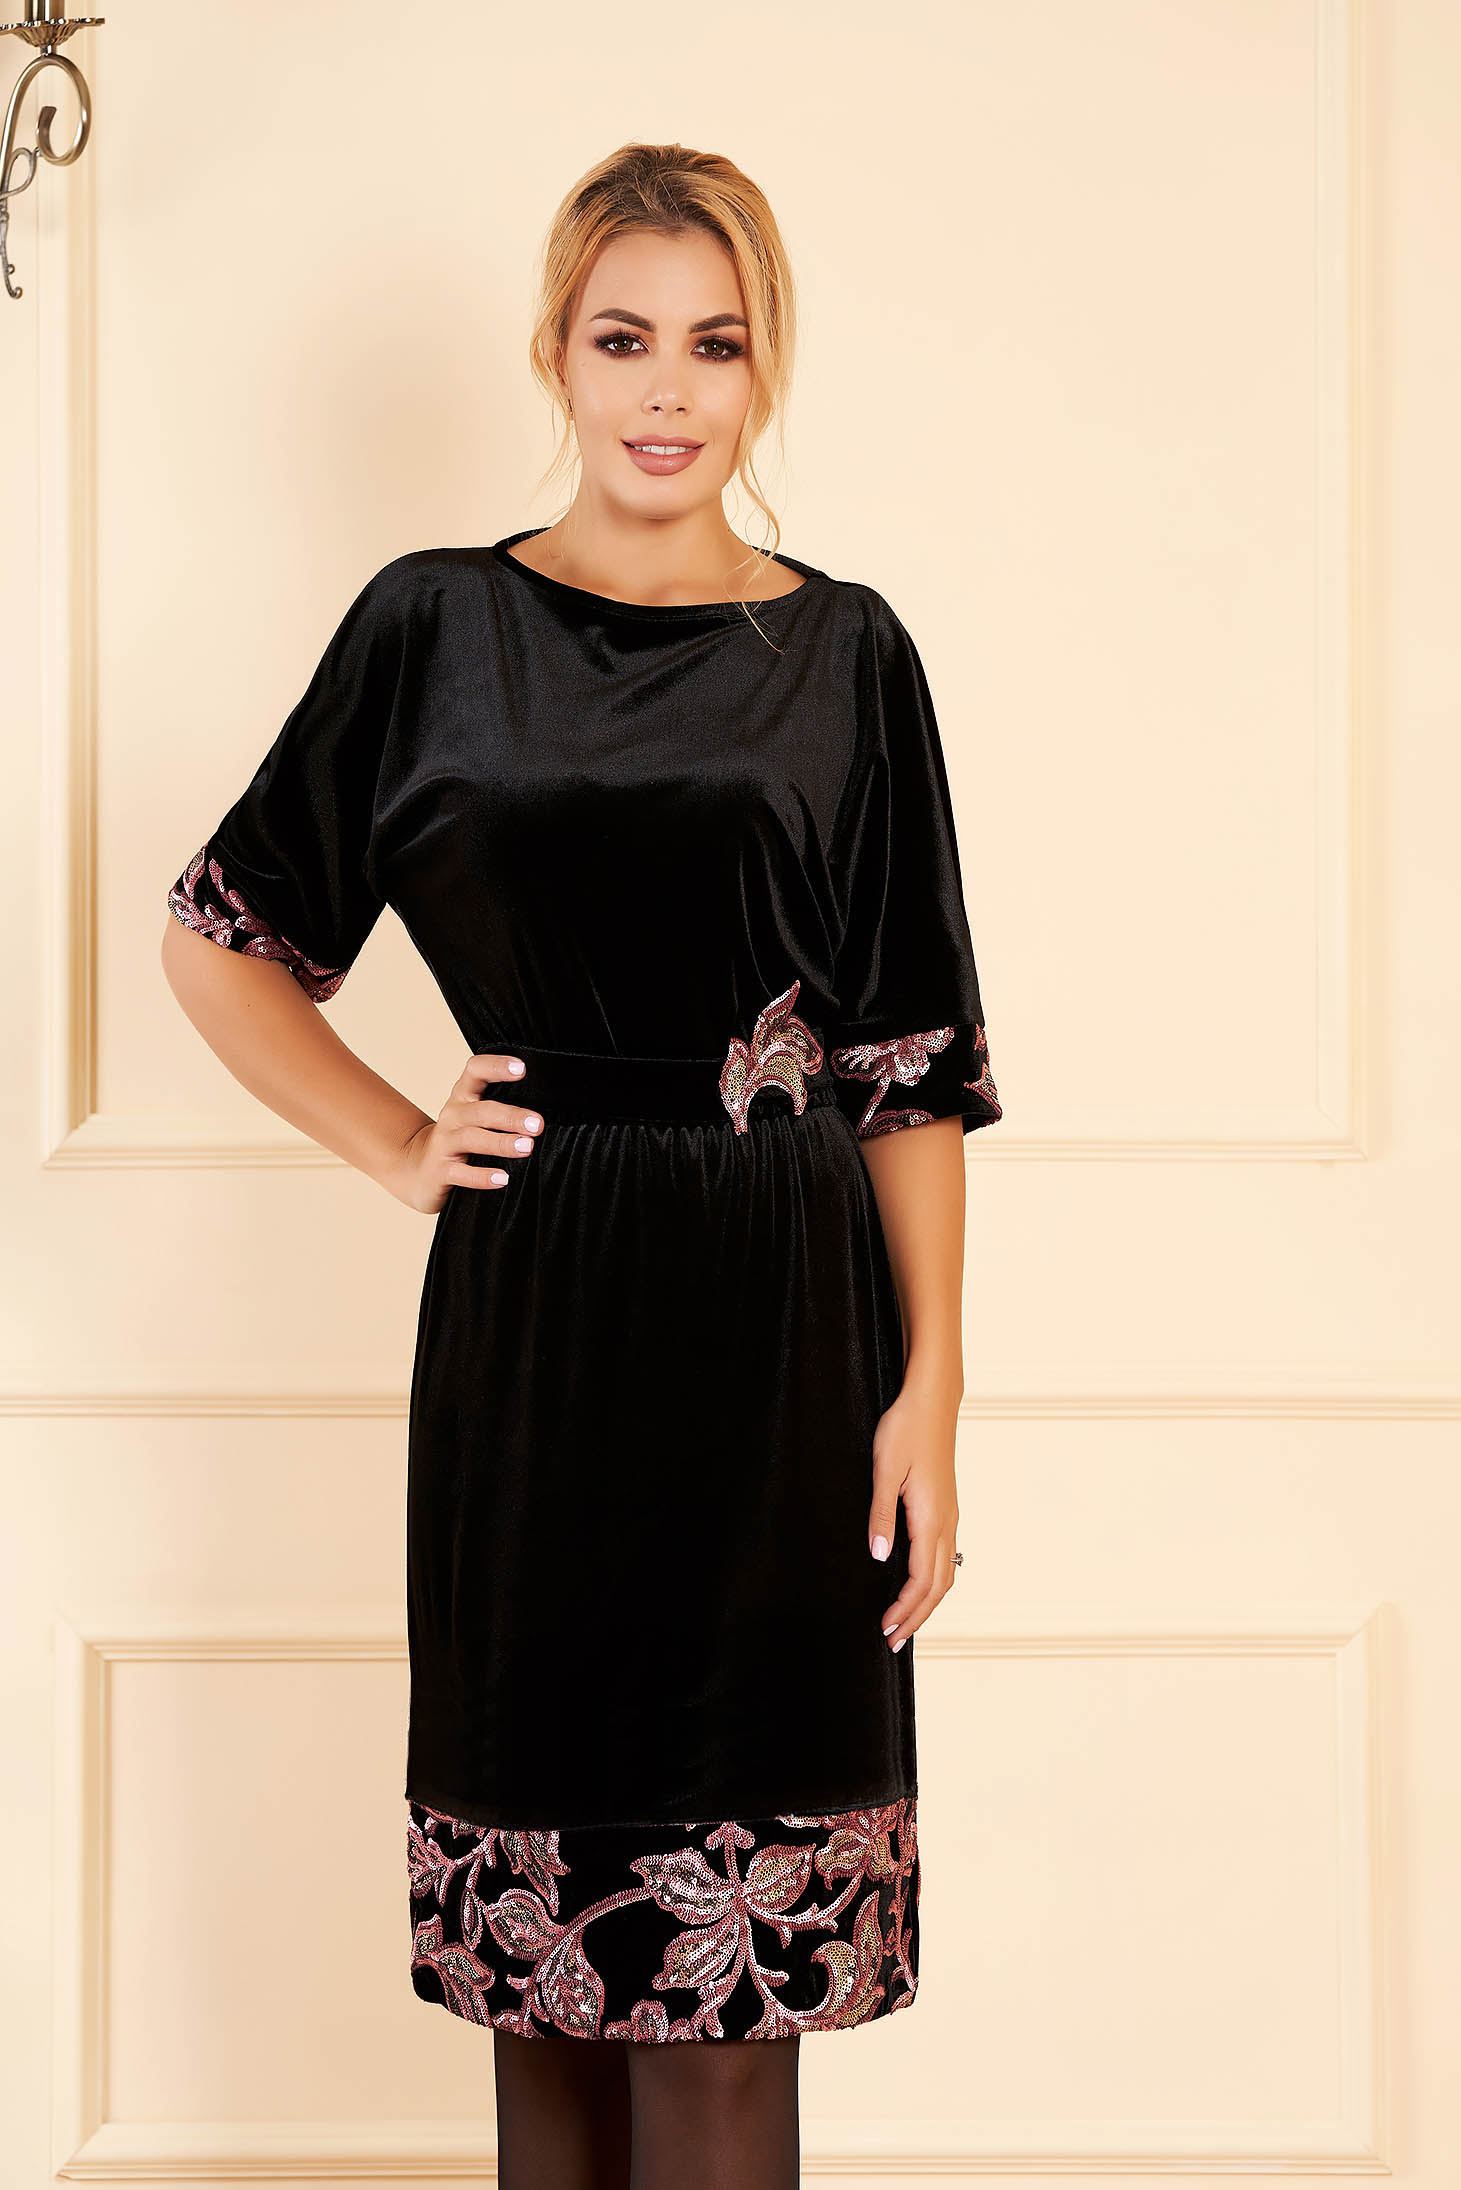 Black StarShinerS occasional elegant dress straight velvet with sequin embellished details detachable cord short sleeves